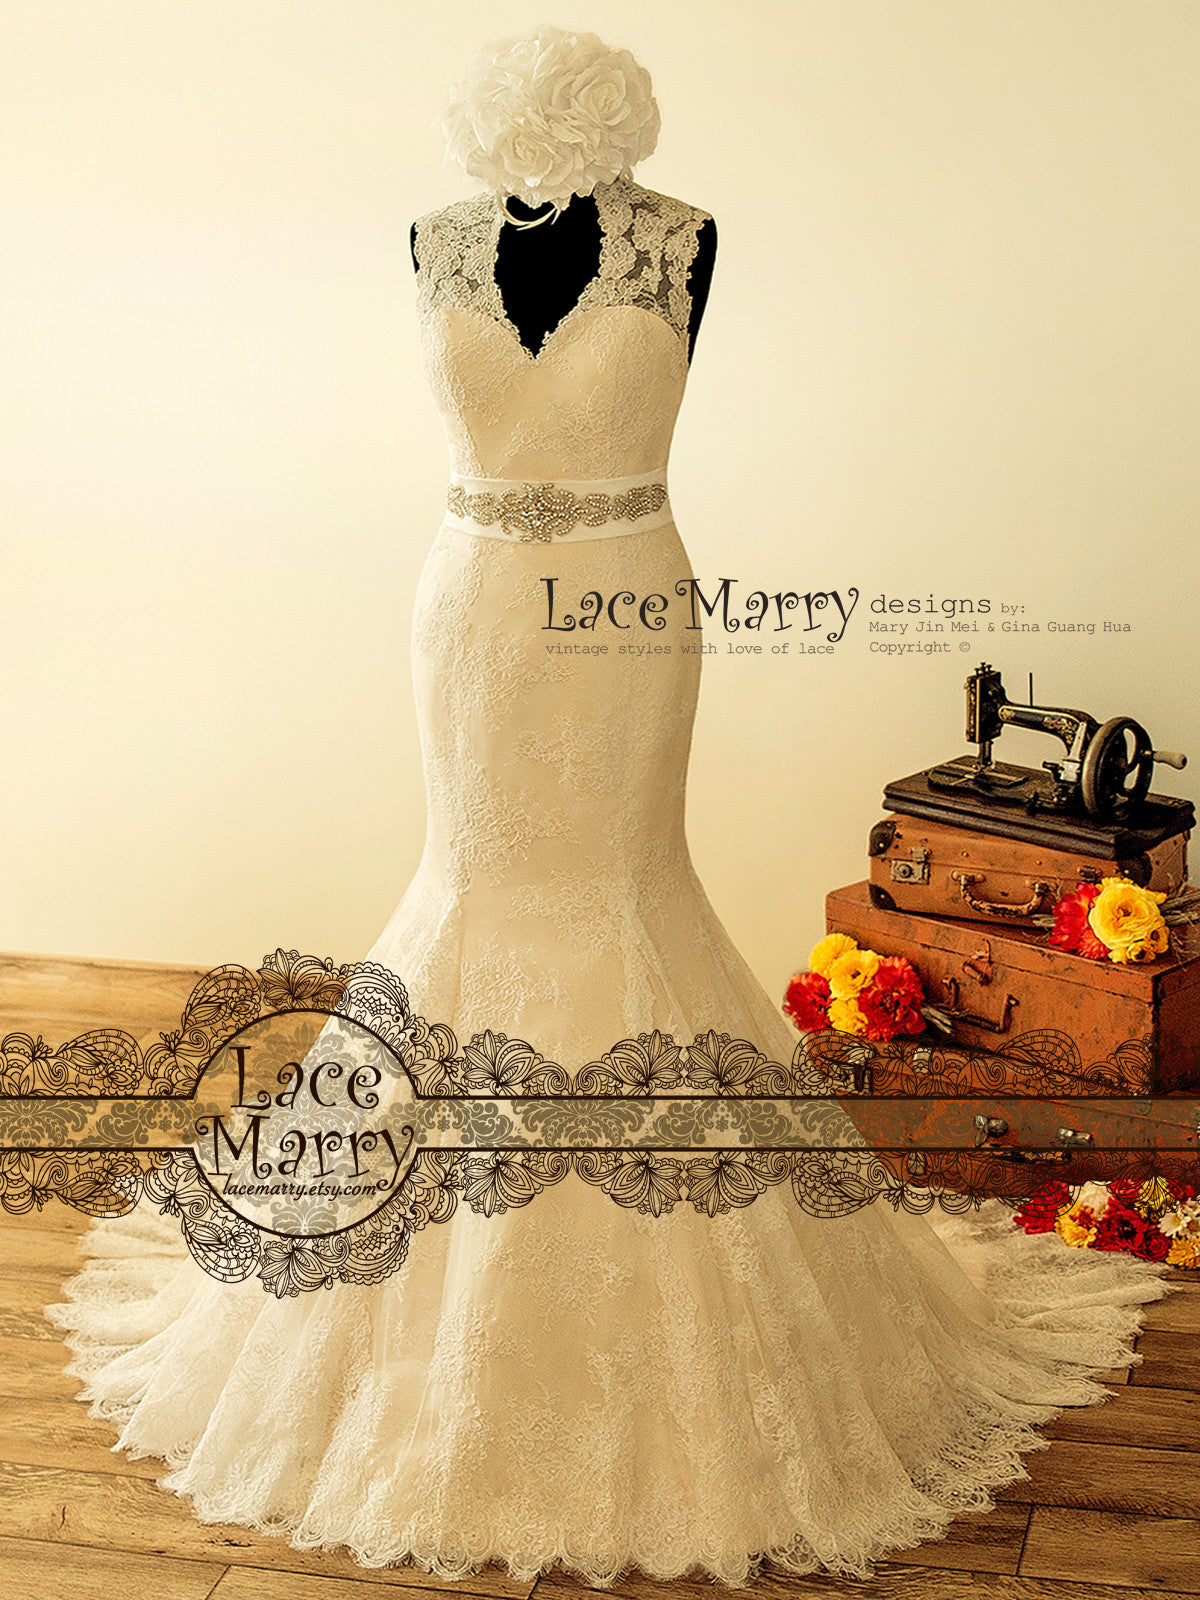 Vintage Style Trumpet Shape Wedding Dress from French Lace - LaceMarry